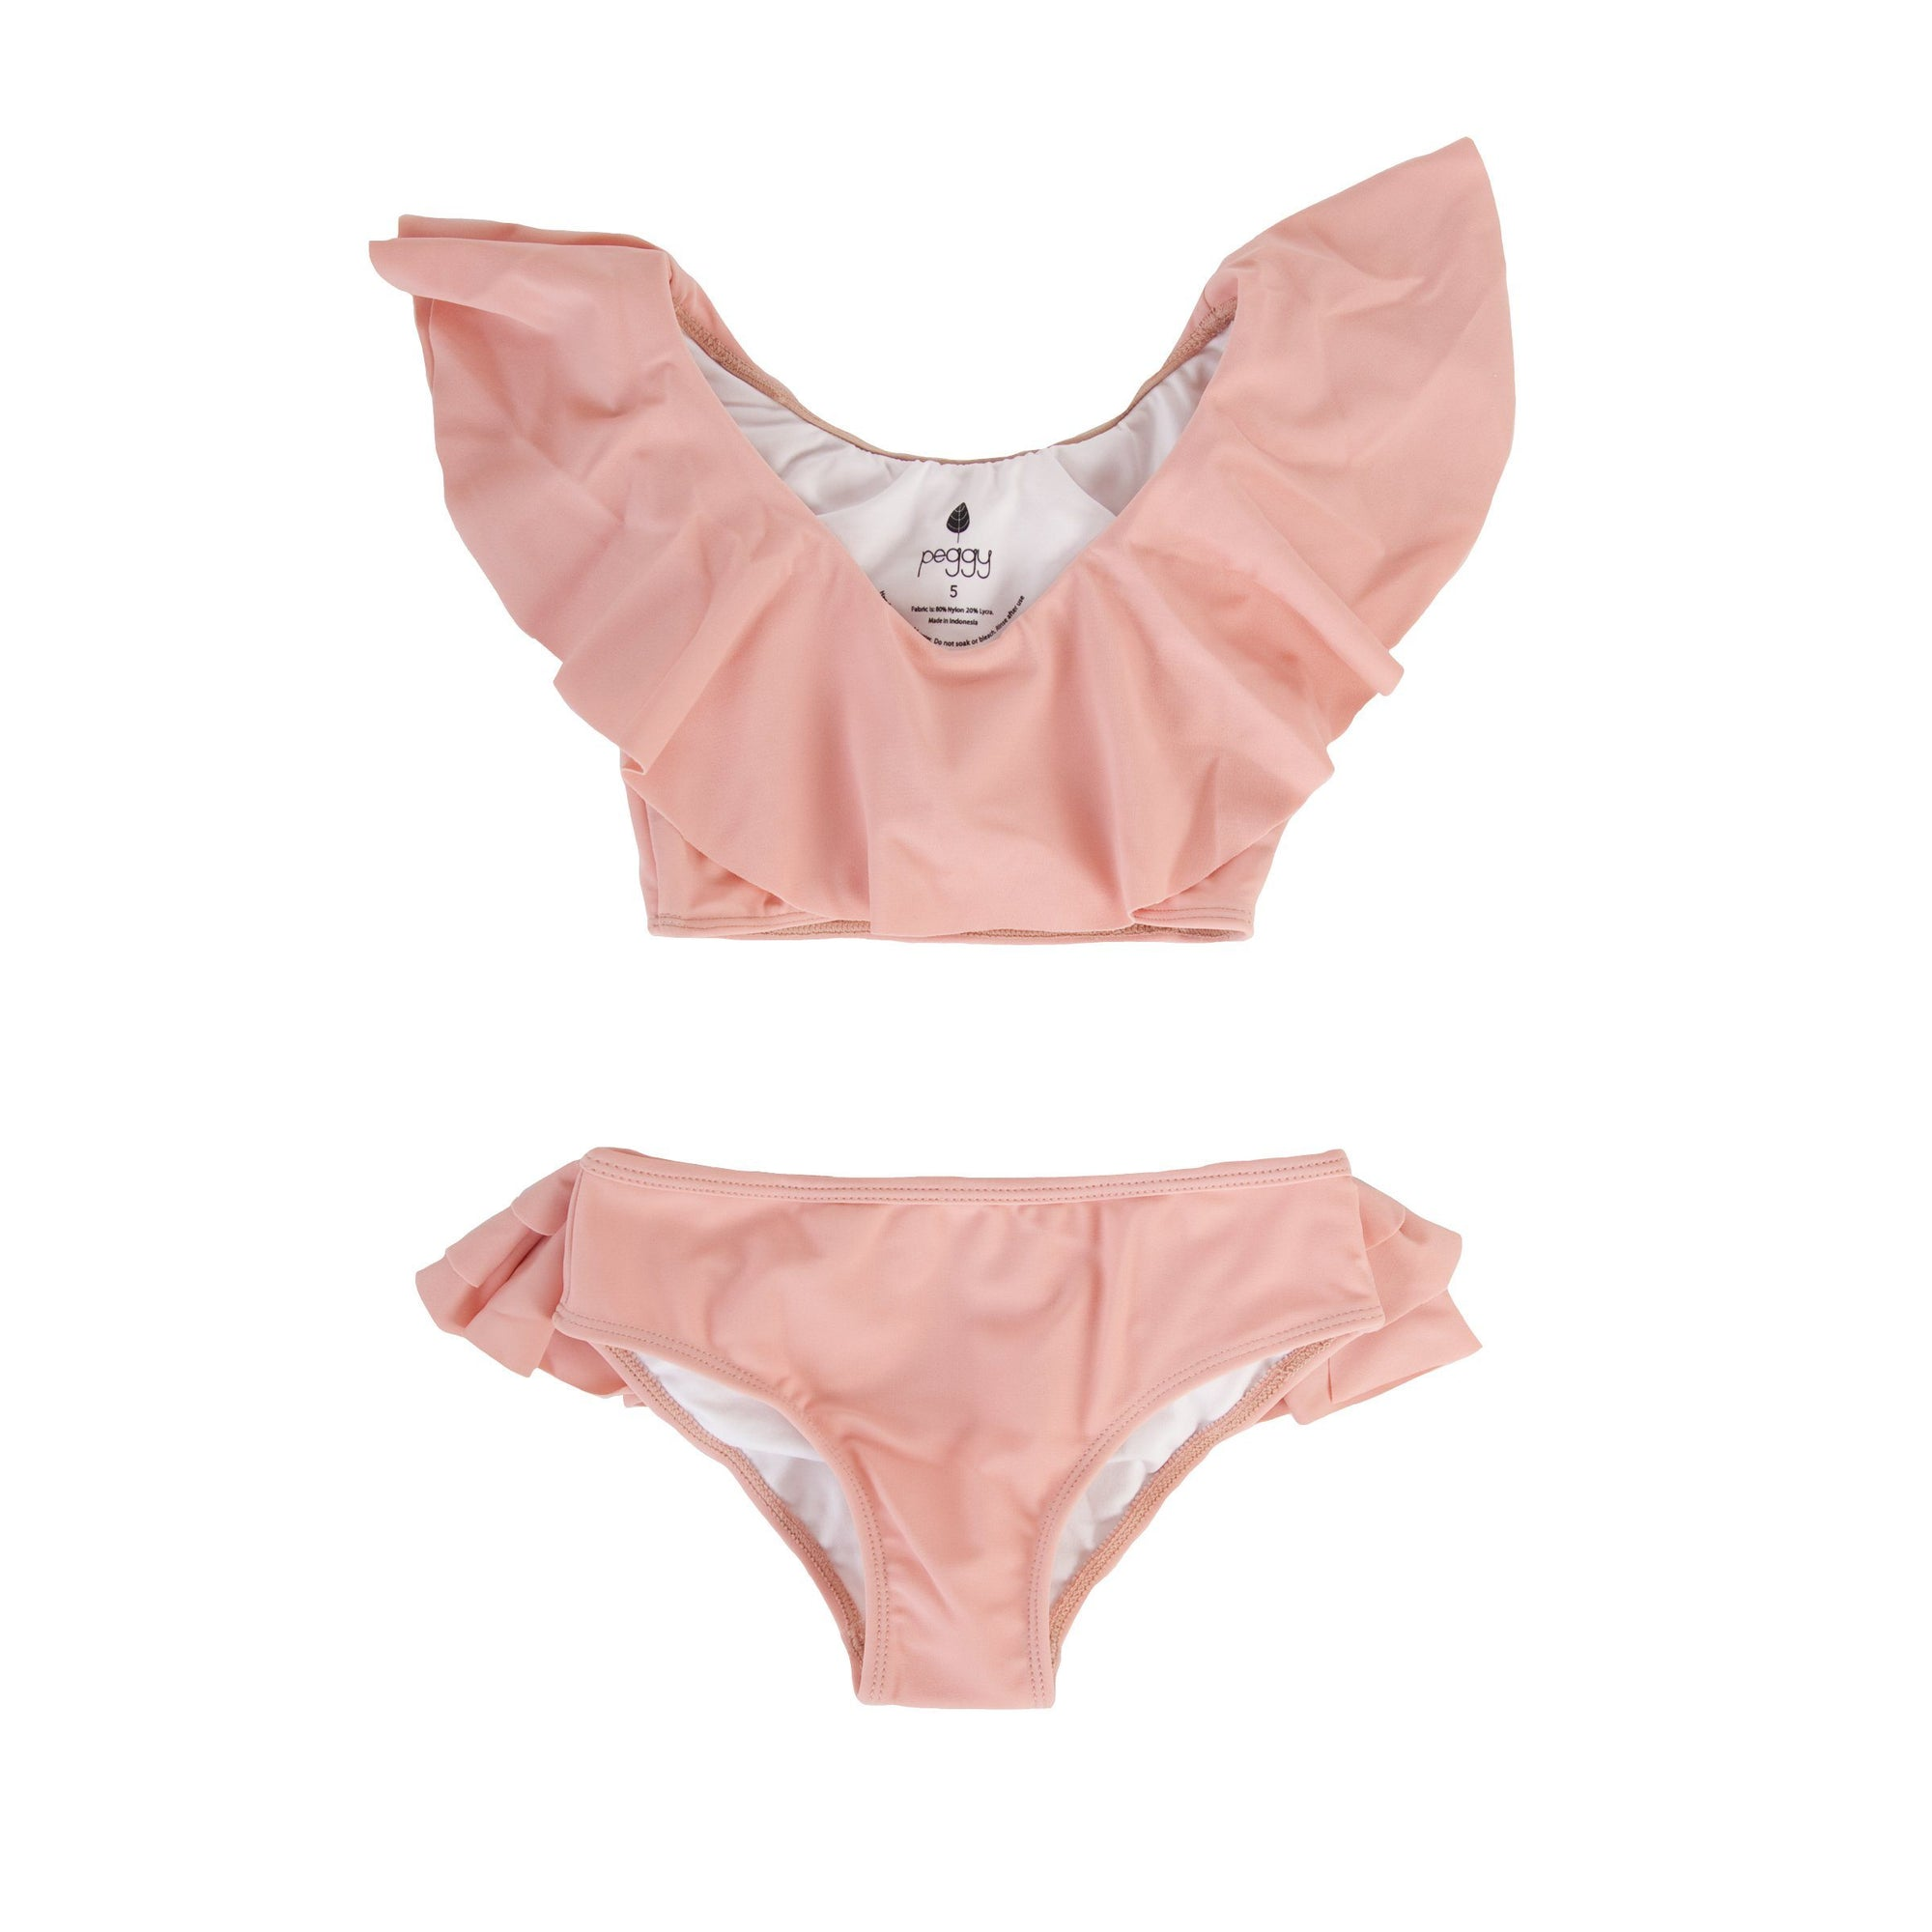 Sweeney two piece swimsuit in blush pink.